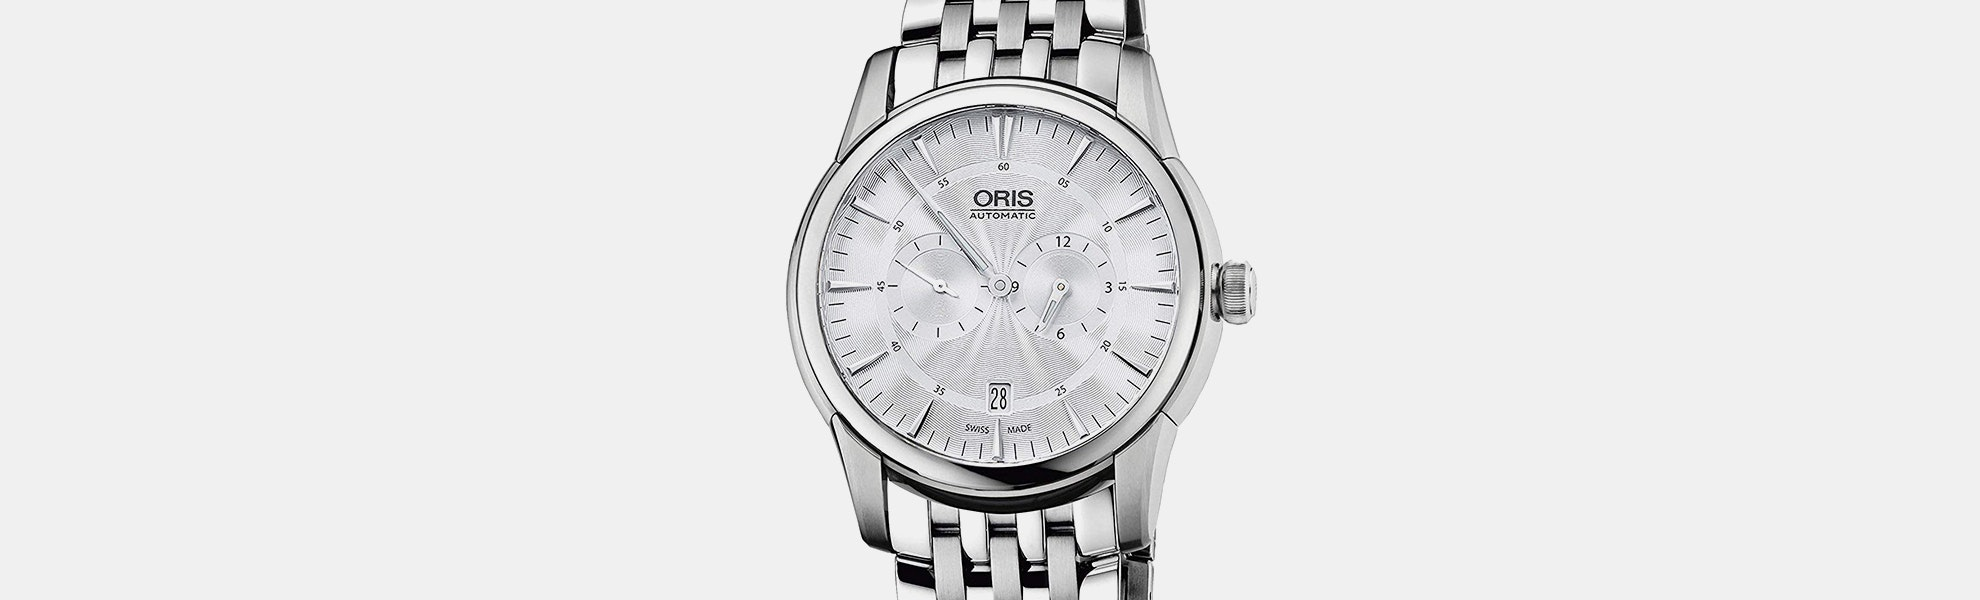 Oris Artelier Regulateur Automatic Watch